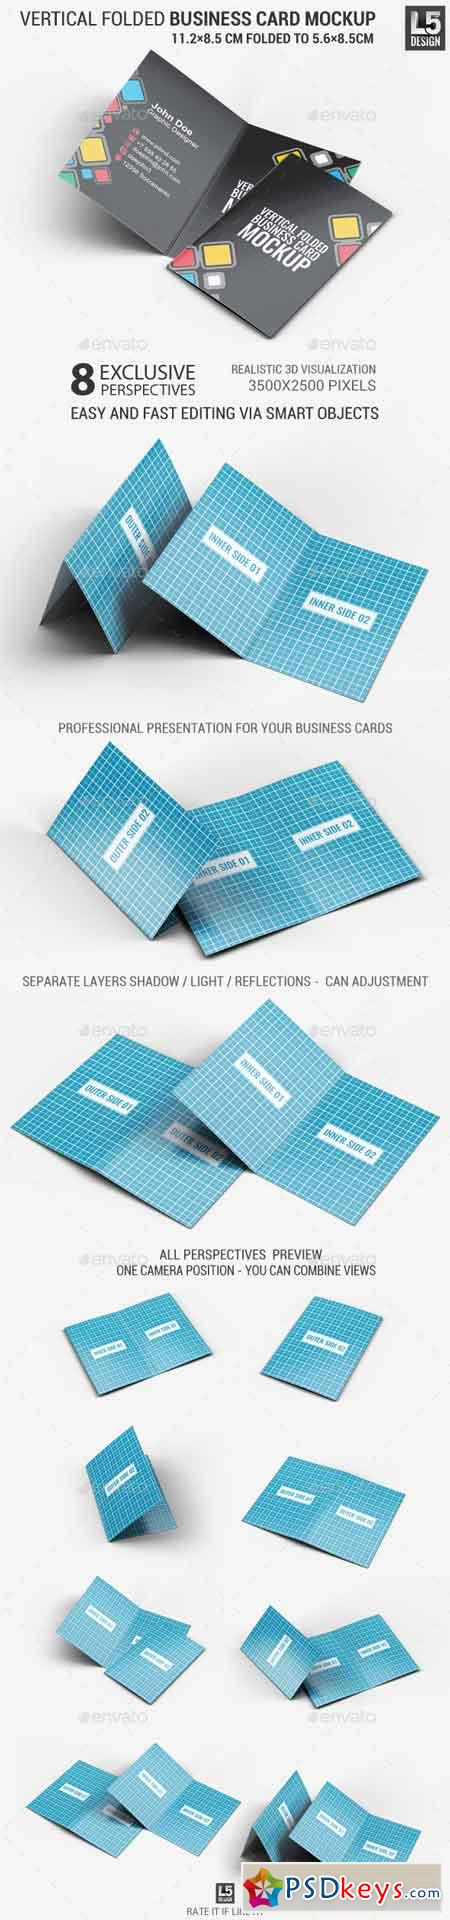 Folded Free Download Photoshop Vector Stock Image Via